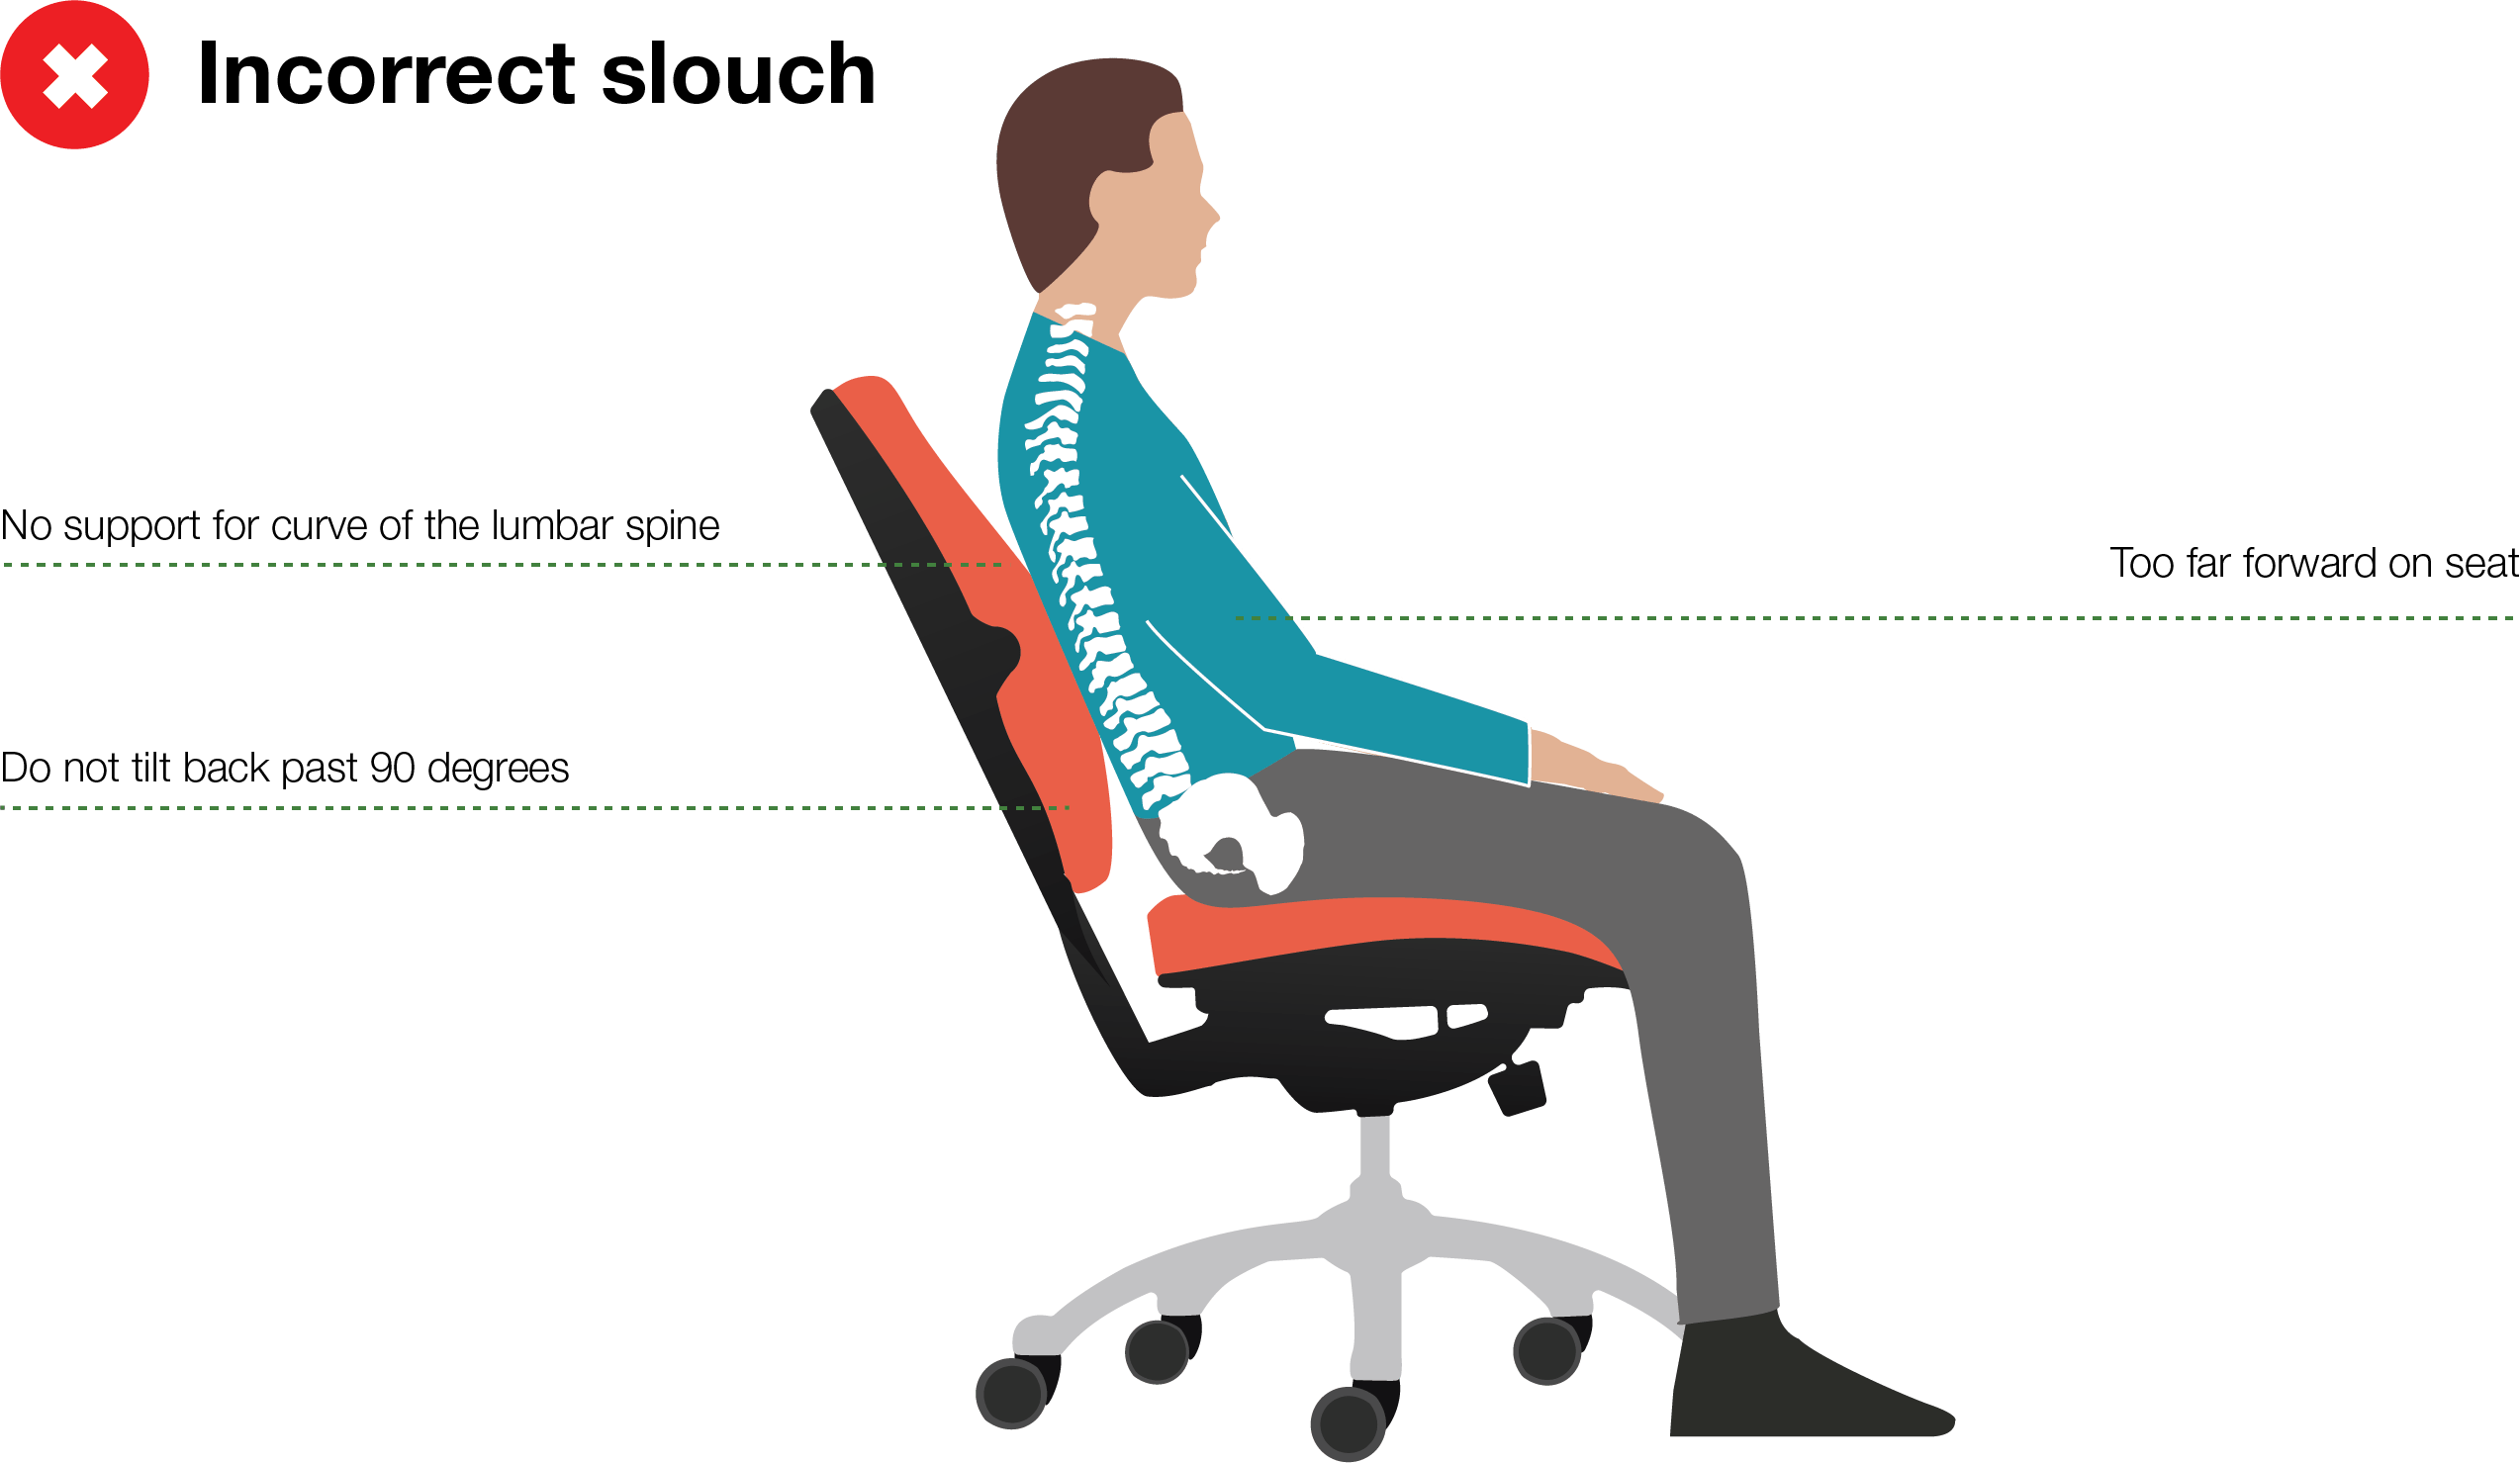 office chair posture tips best modern high chairs 2017 art of sitting posturite poor slouch